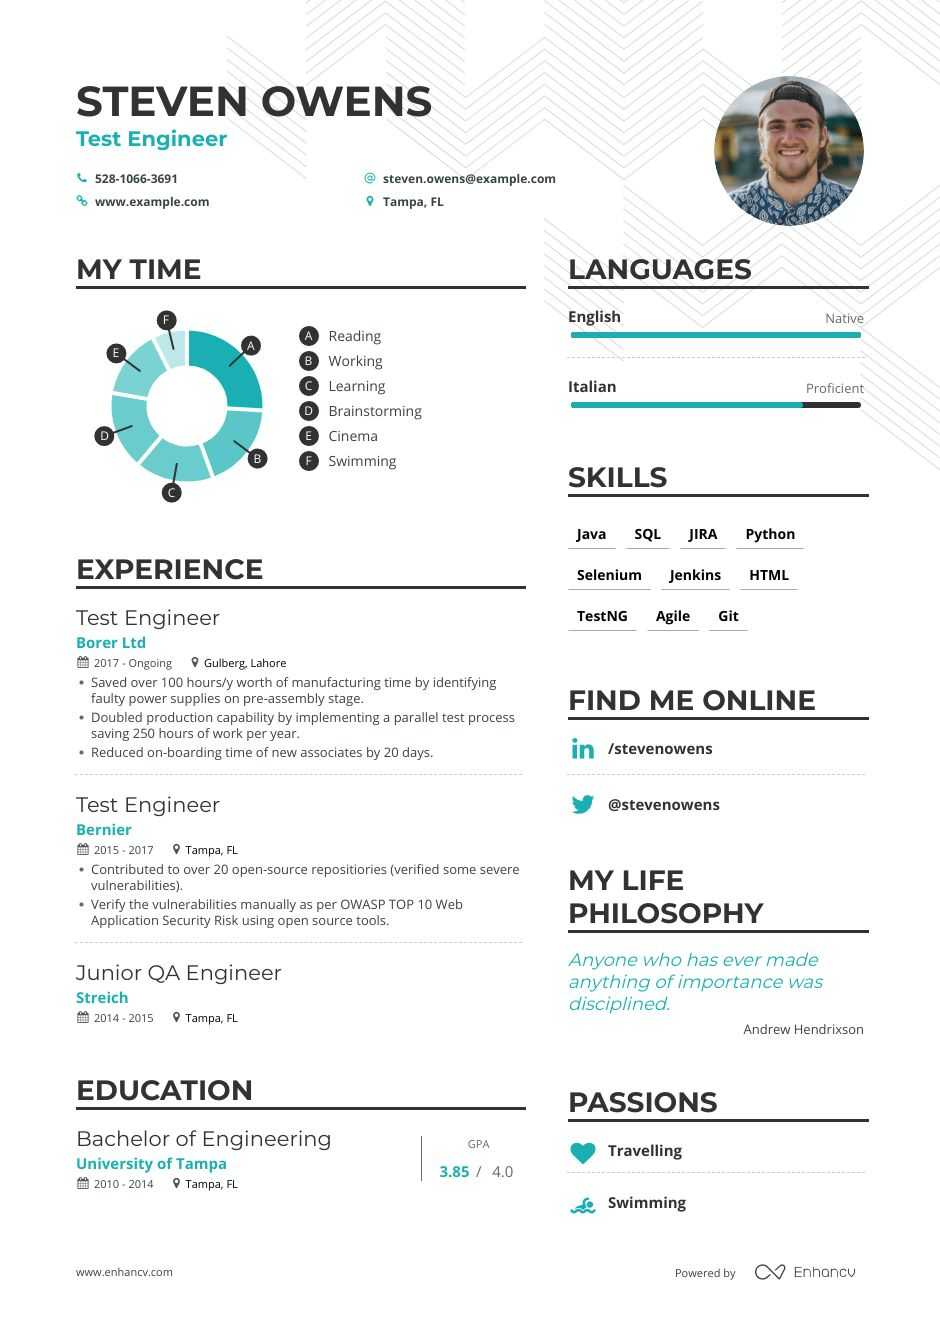 top test engineer resume examples expert tips enhancv automation template format for Resume Automation Engineer Resume Template